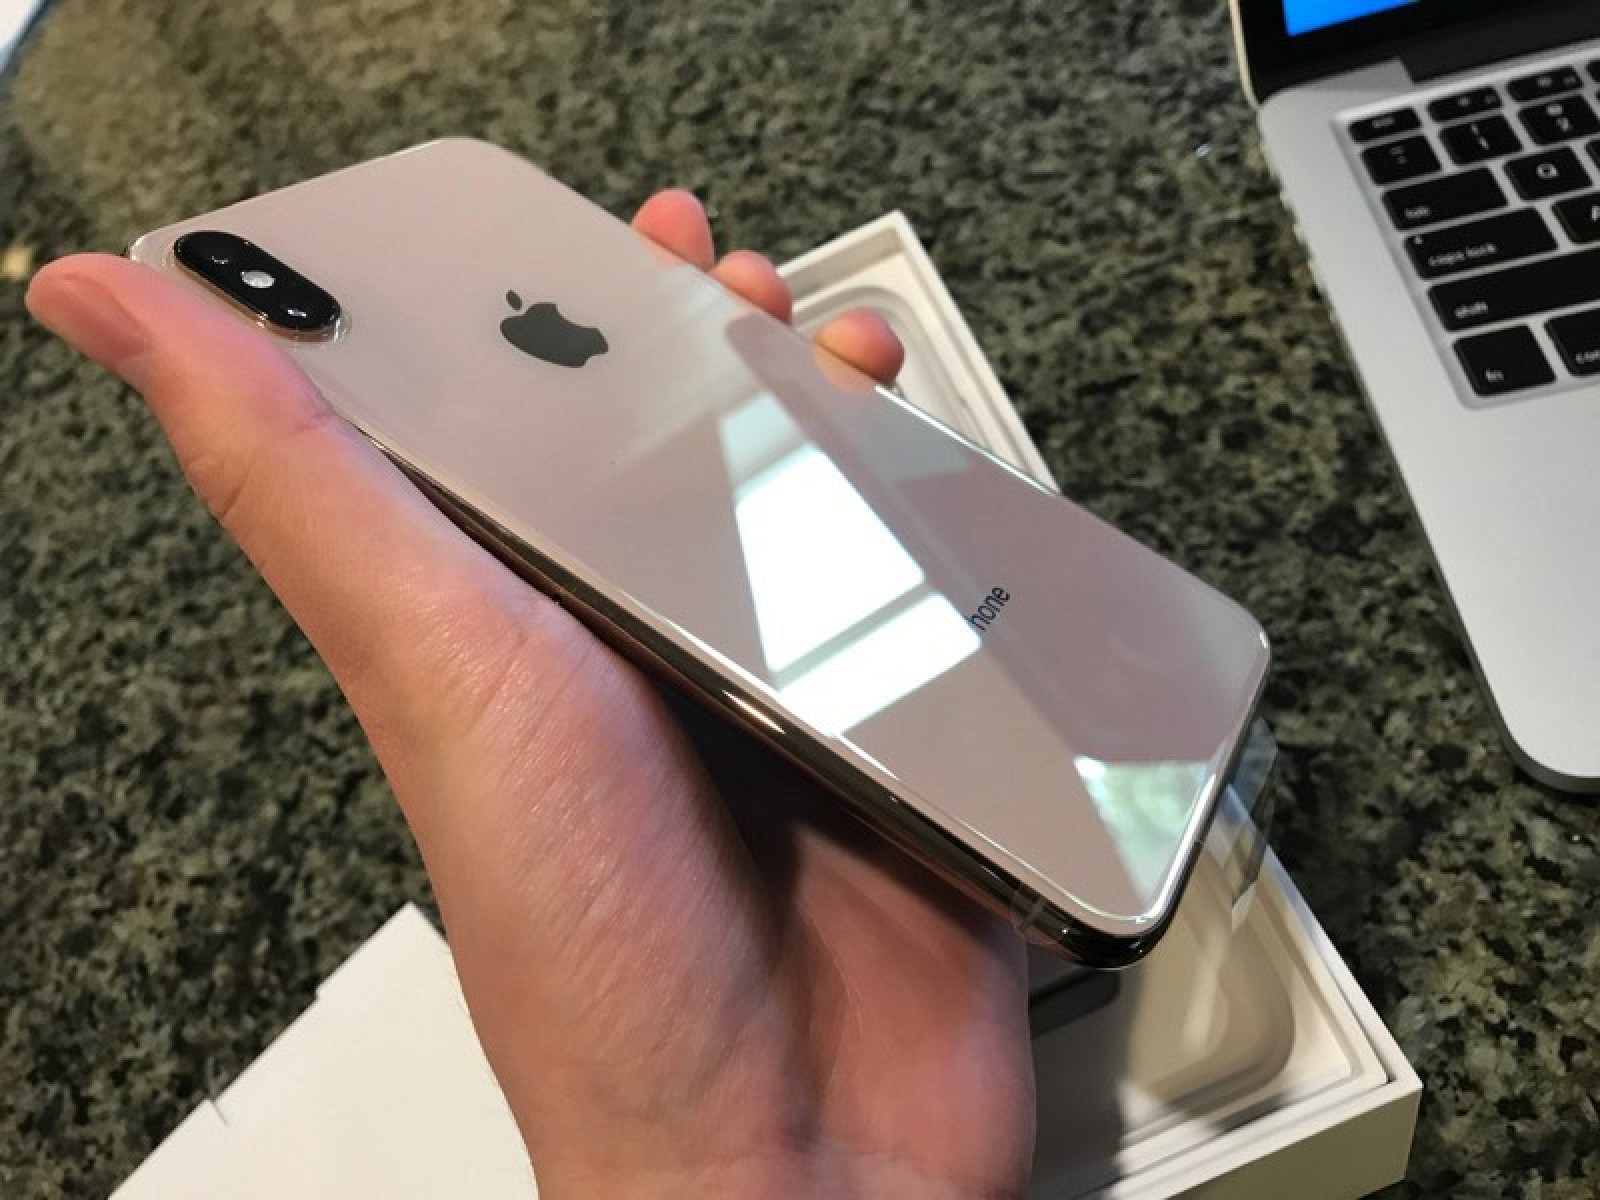 First Impressions From New iPhone XS and iPhone XS Max Users - MacRumors